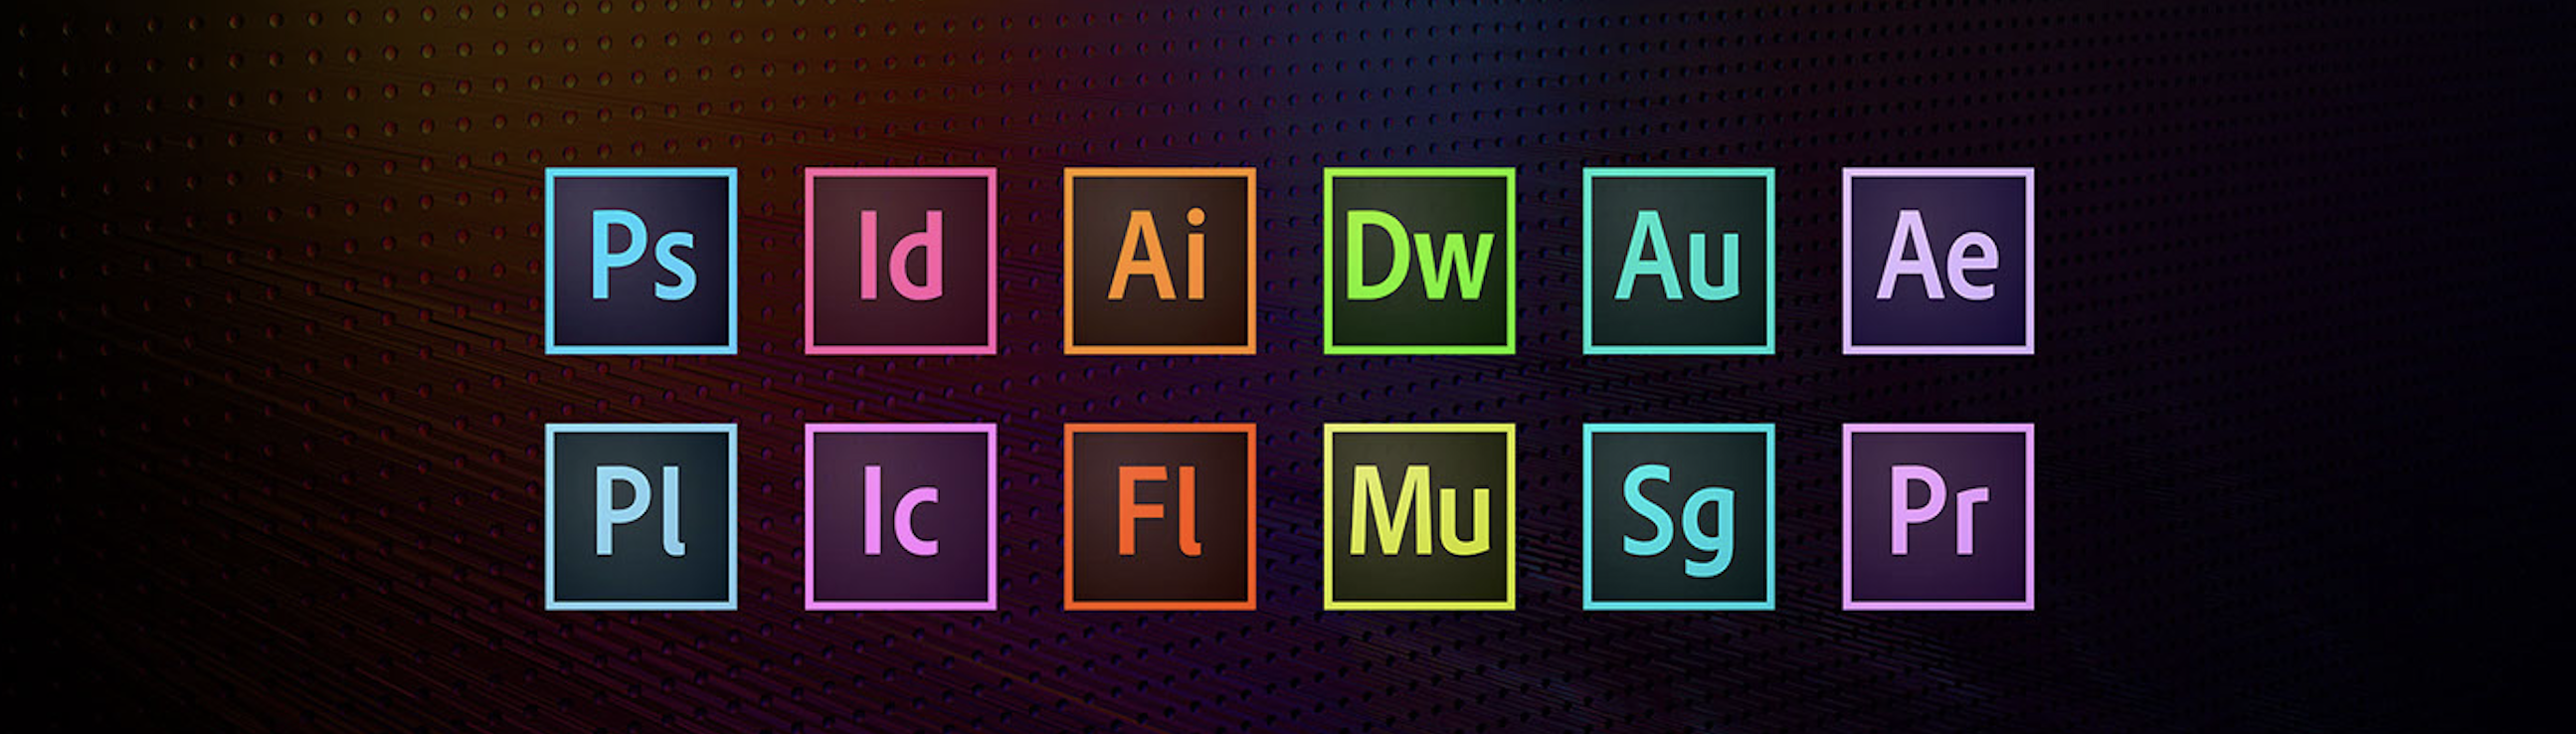 Adobe Creative Suite Video and Photo Editing Software